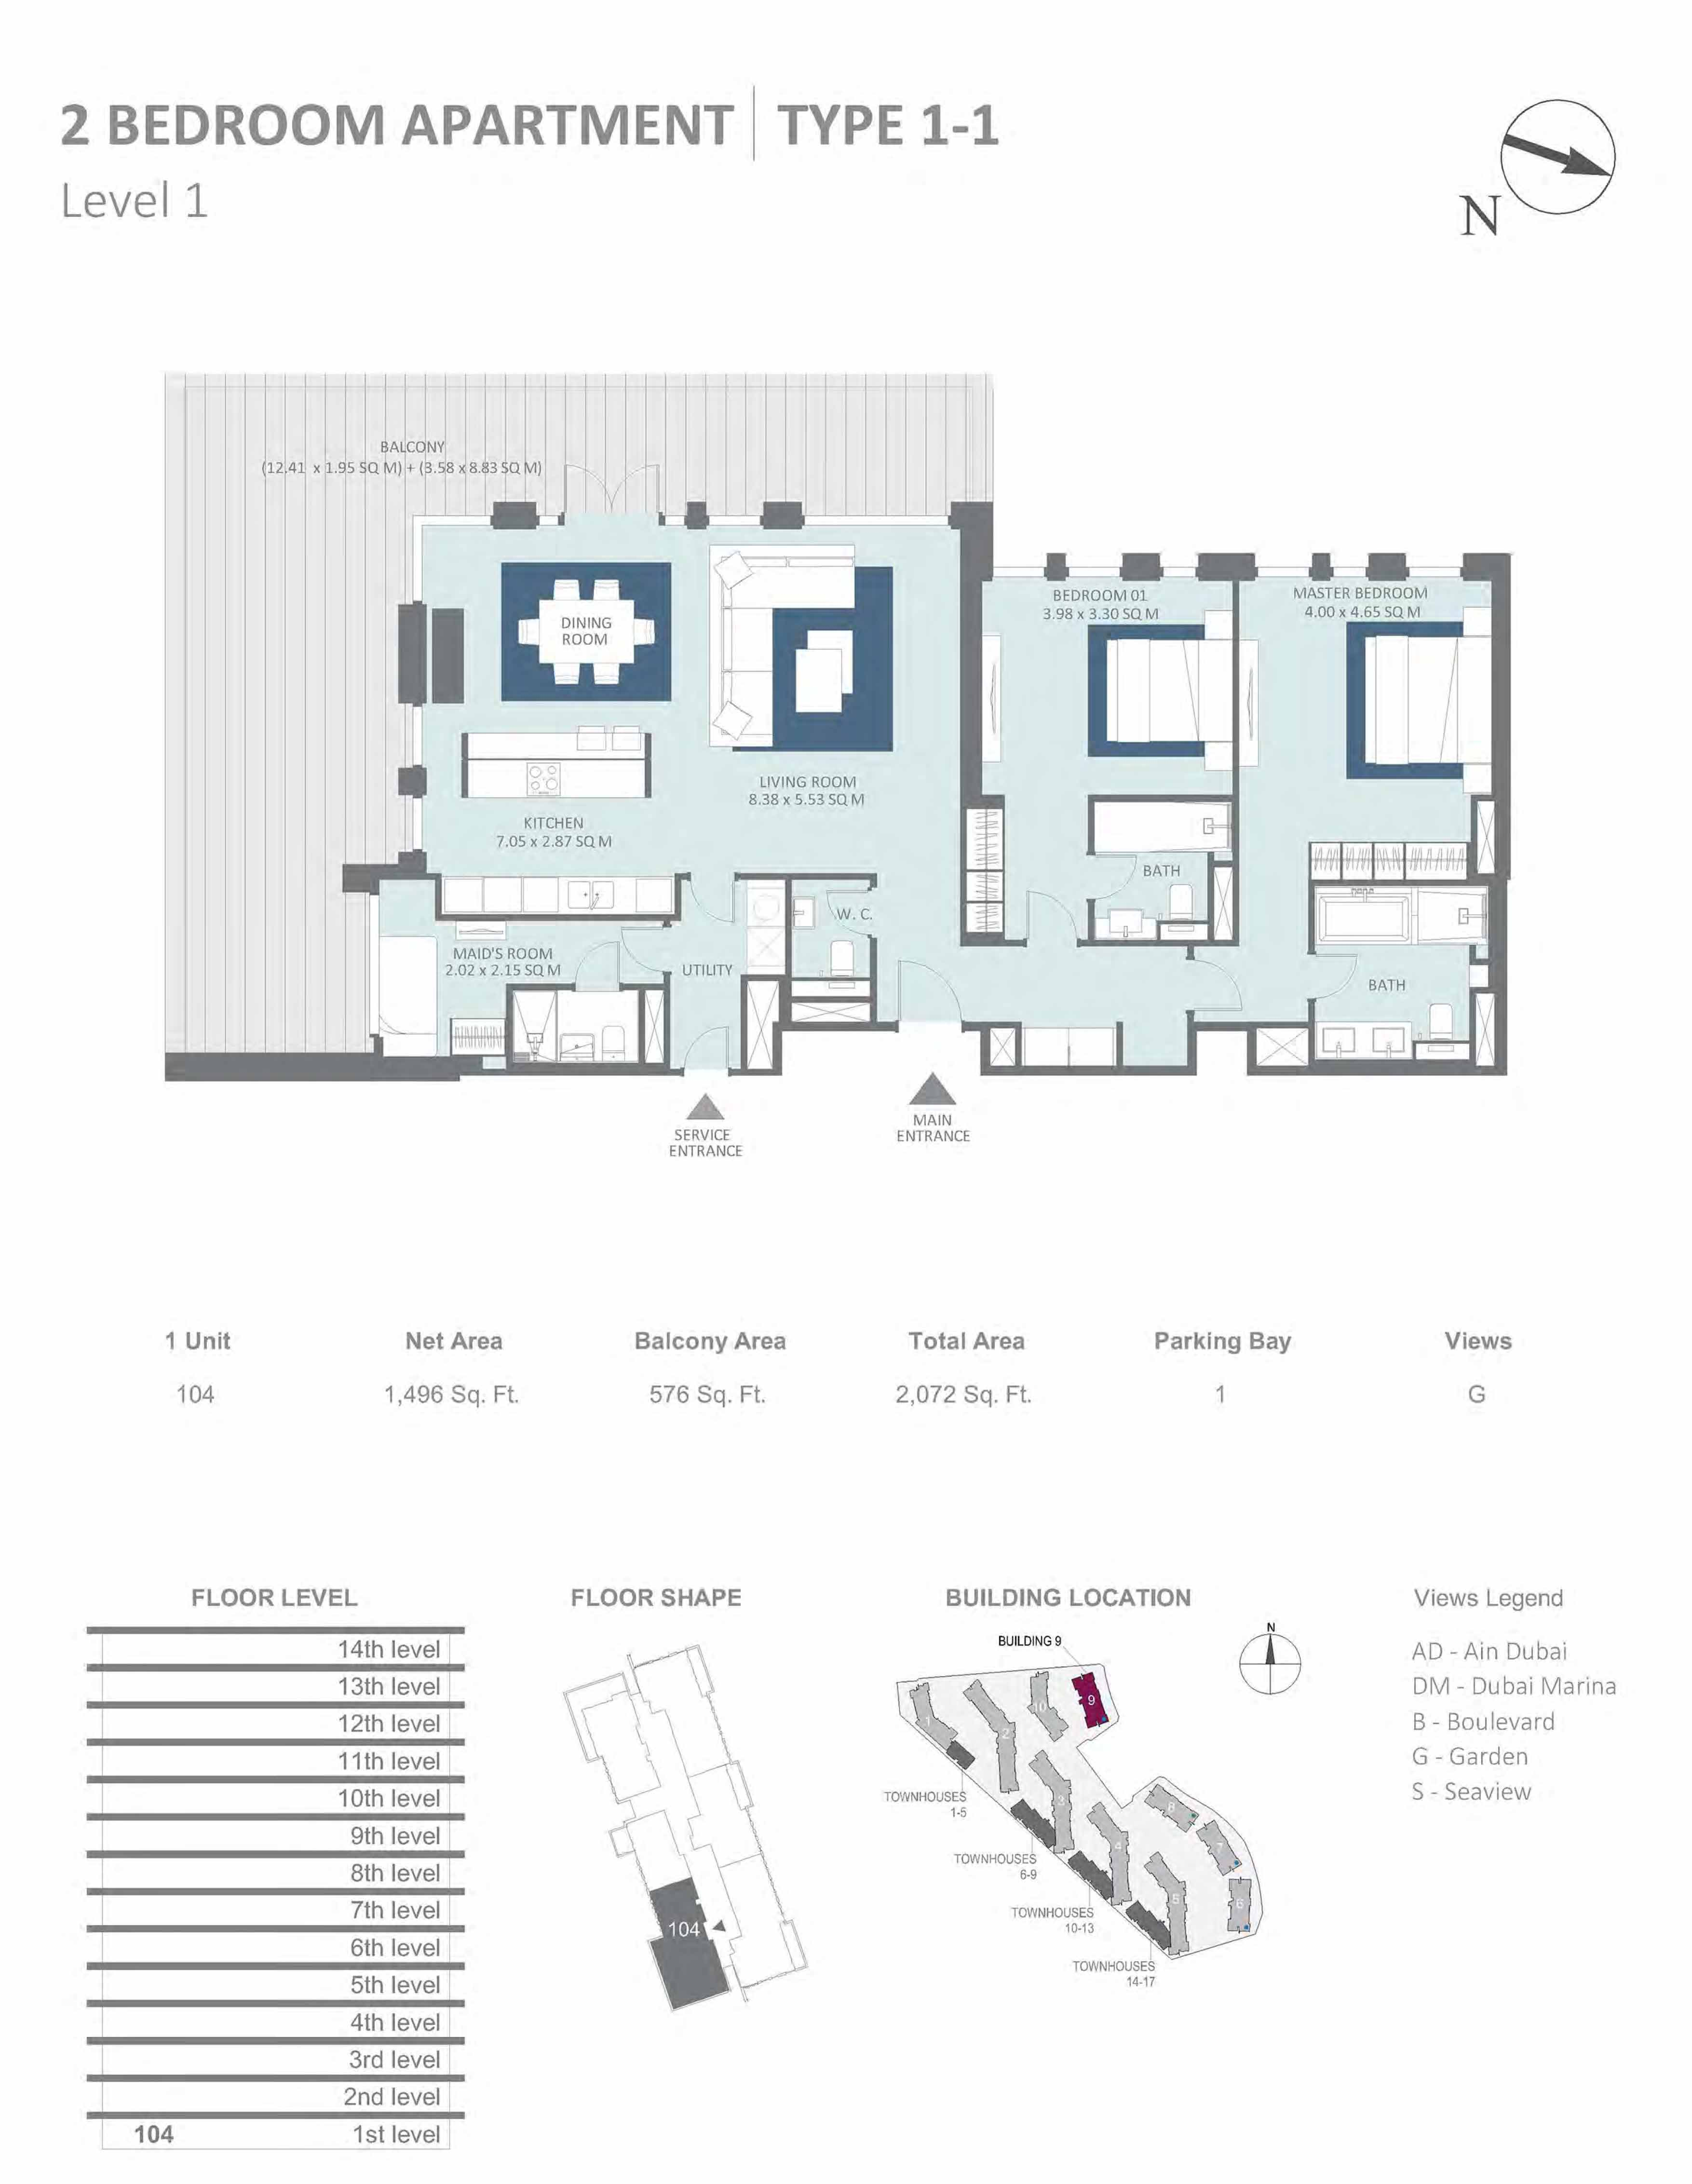 Building 9 - 2 Bedroom Type 1-1, Level 1 Size 2072 sq.ft